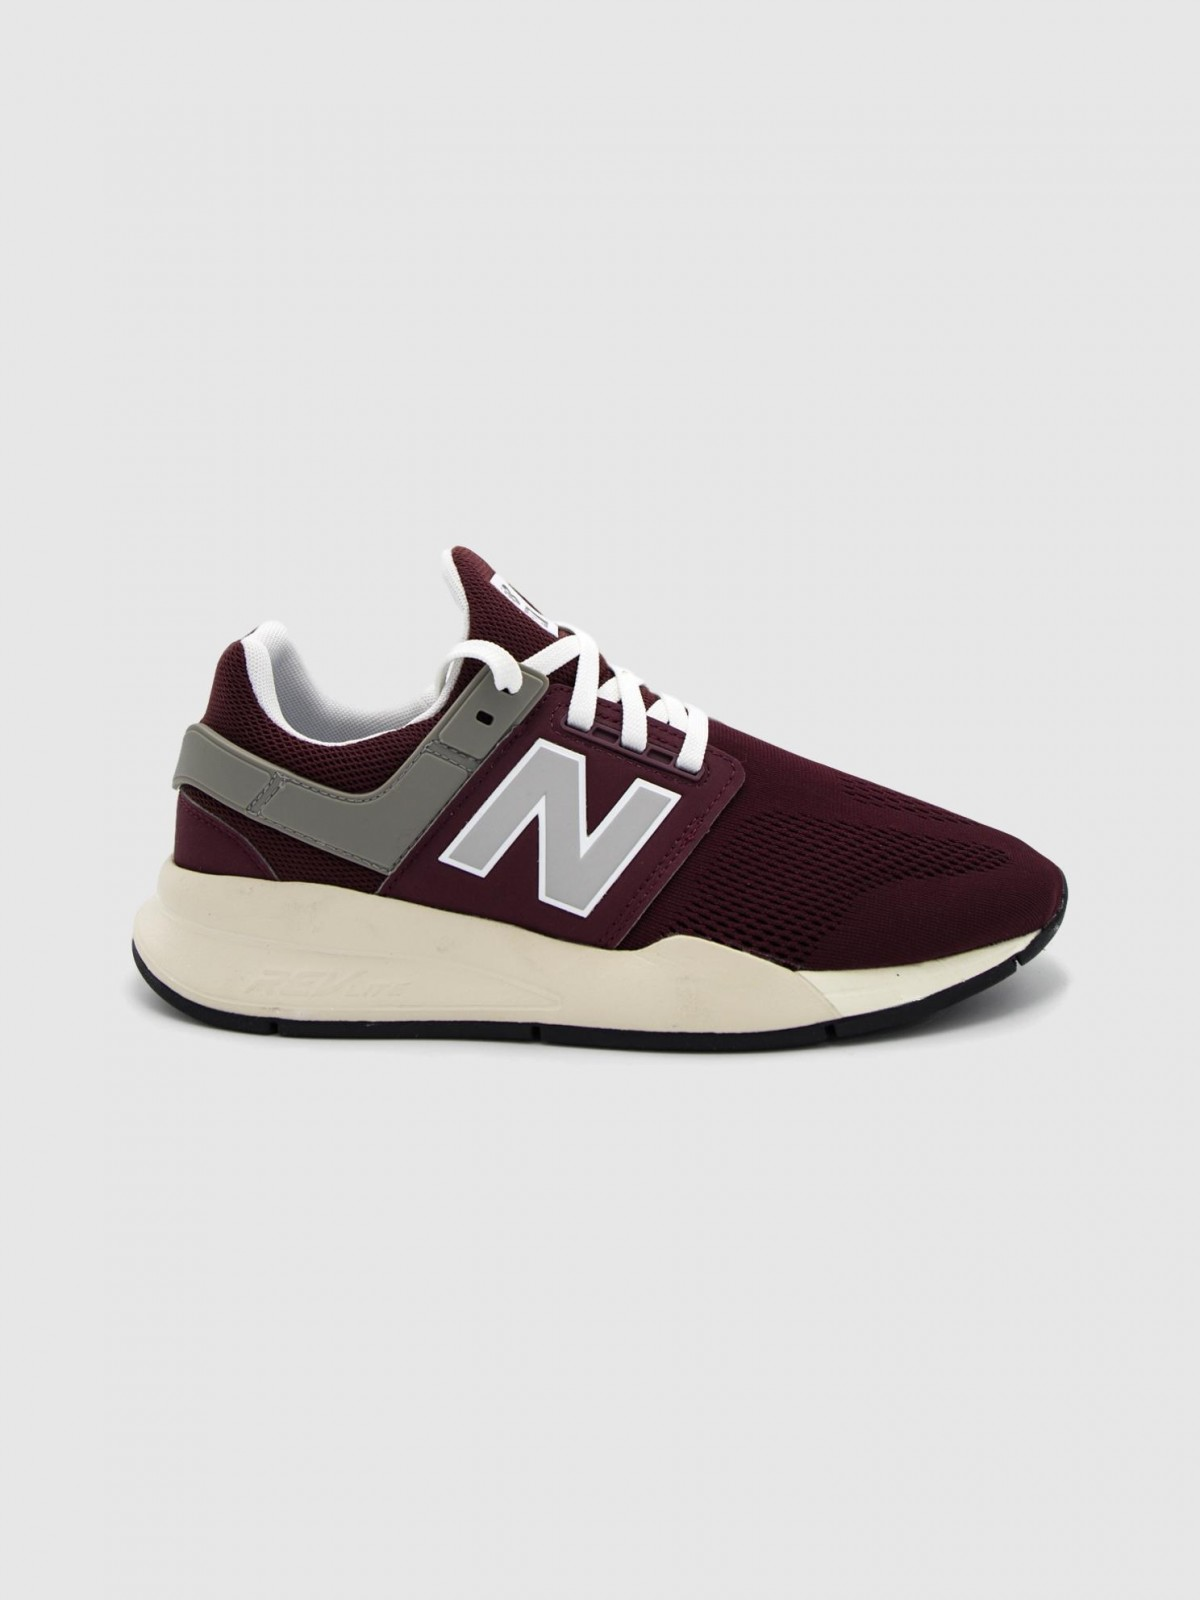 New Balance MS247MG in Bordeaux